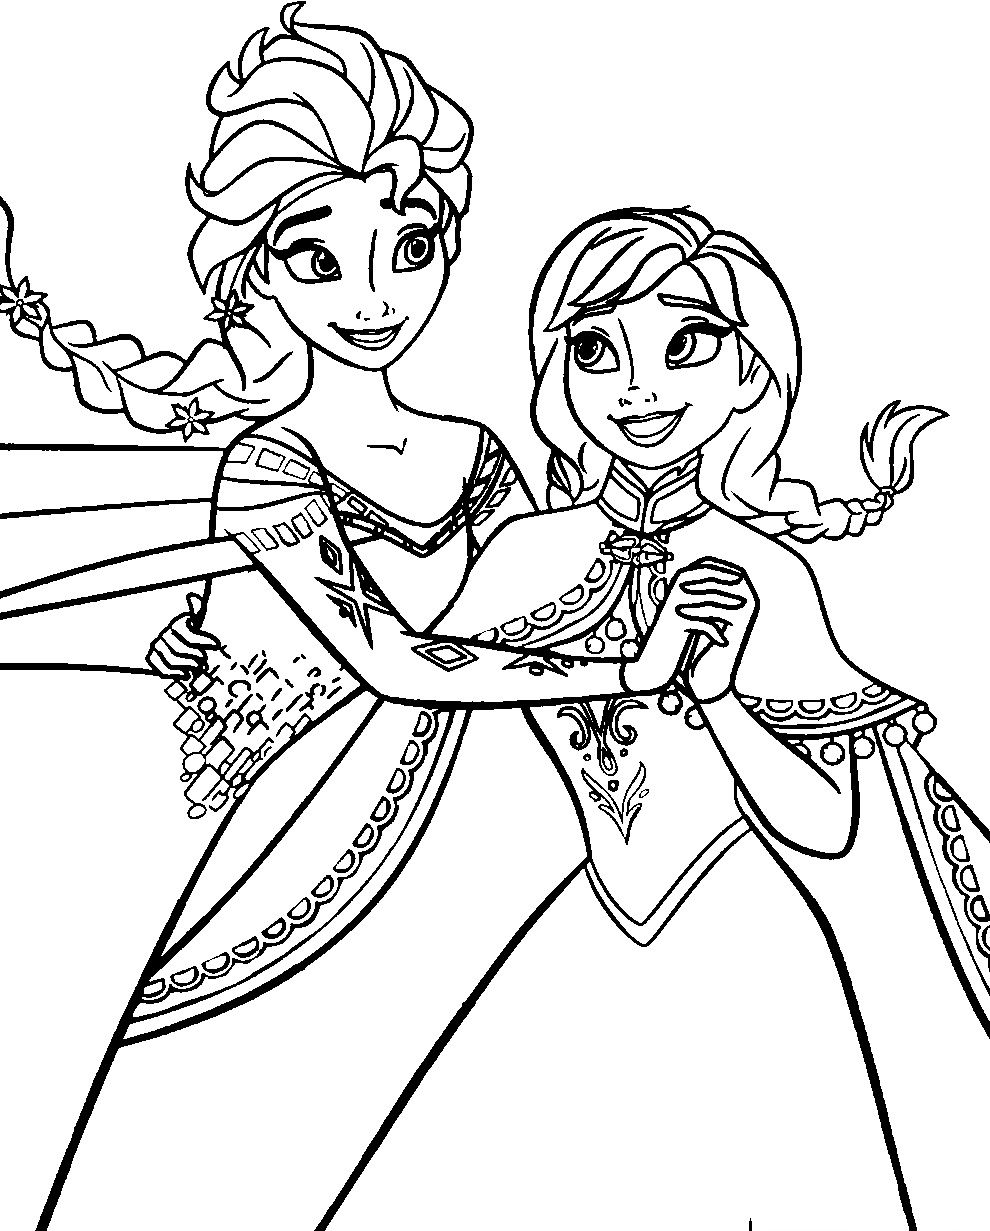 Free coloring in pages frozen - Disney Frozen Coloring Pages To Download Http Freecoloring Pages Org